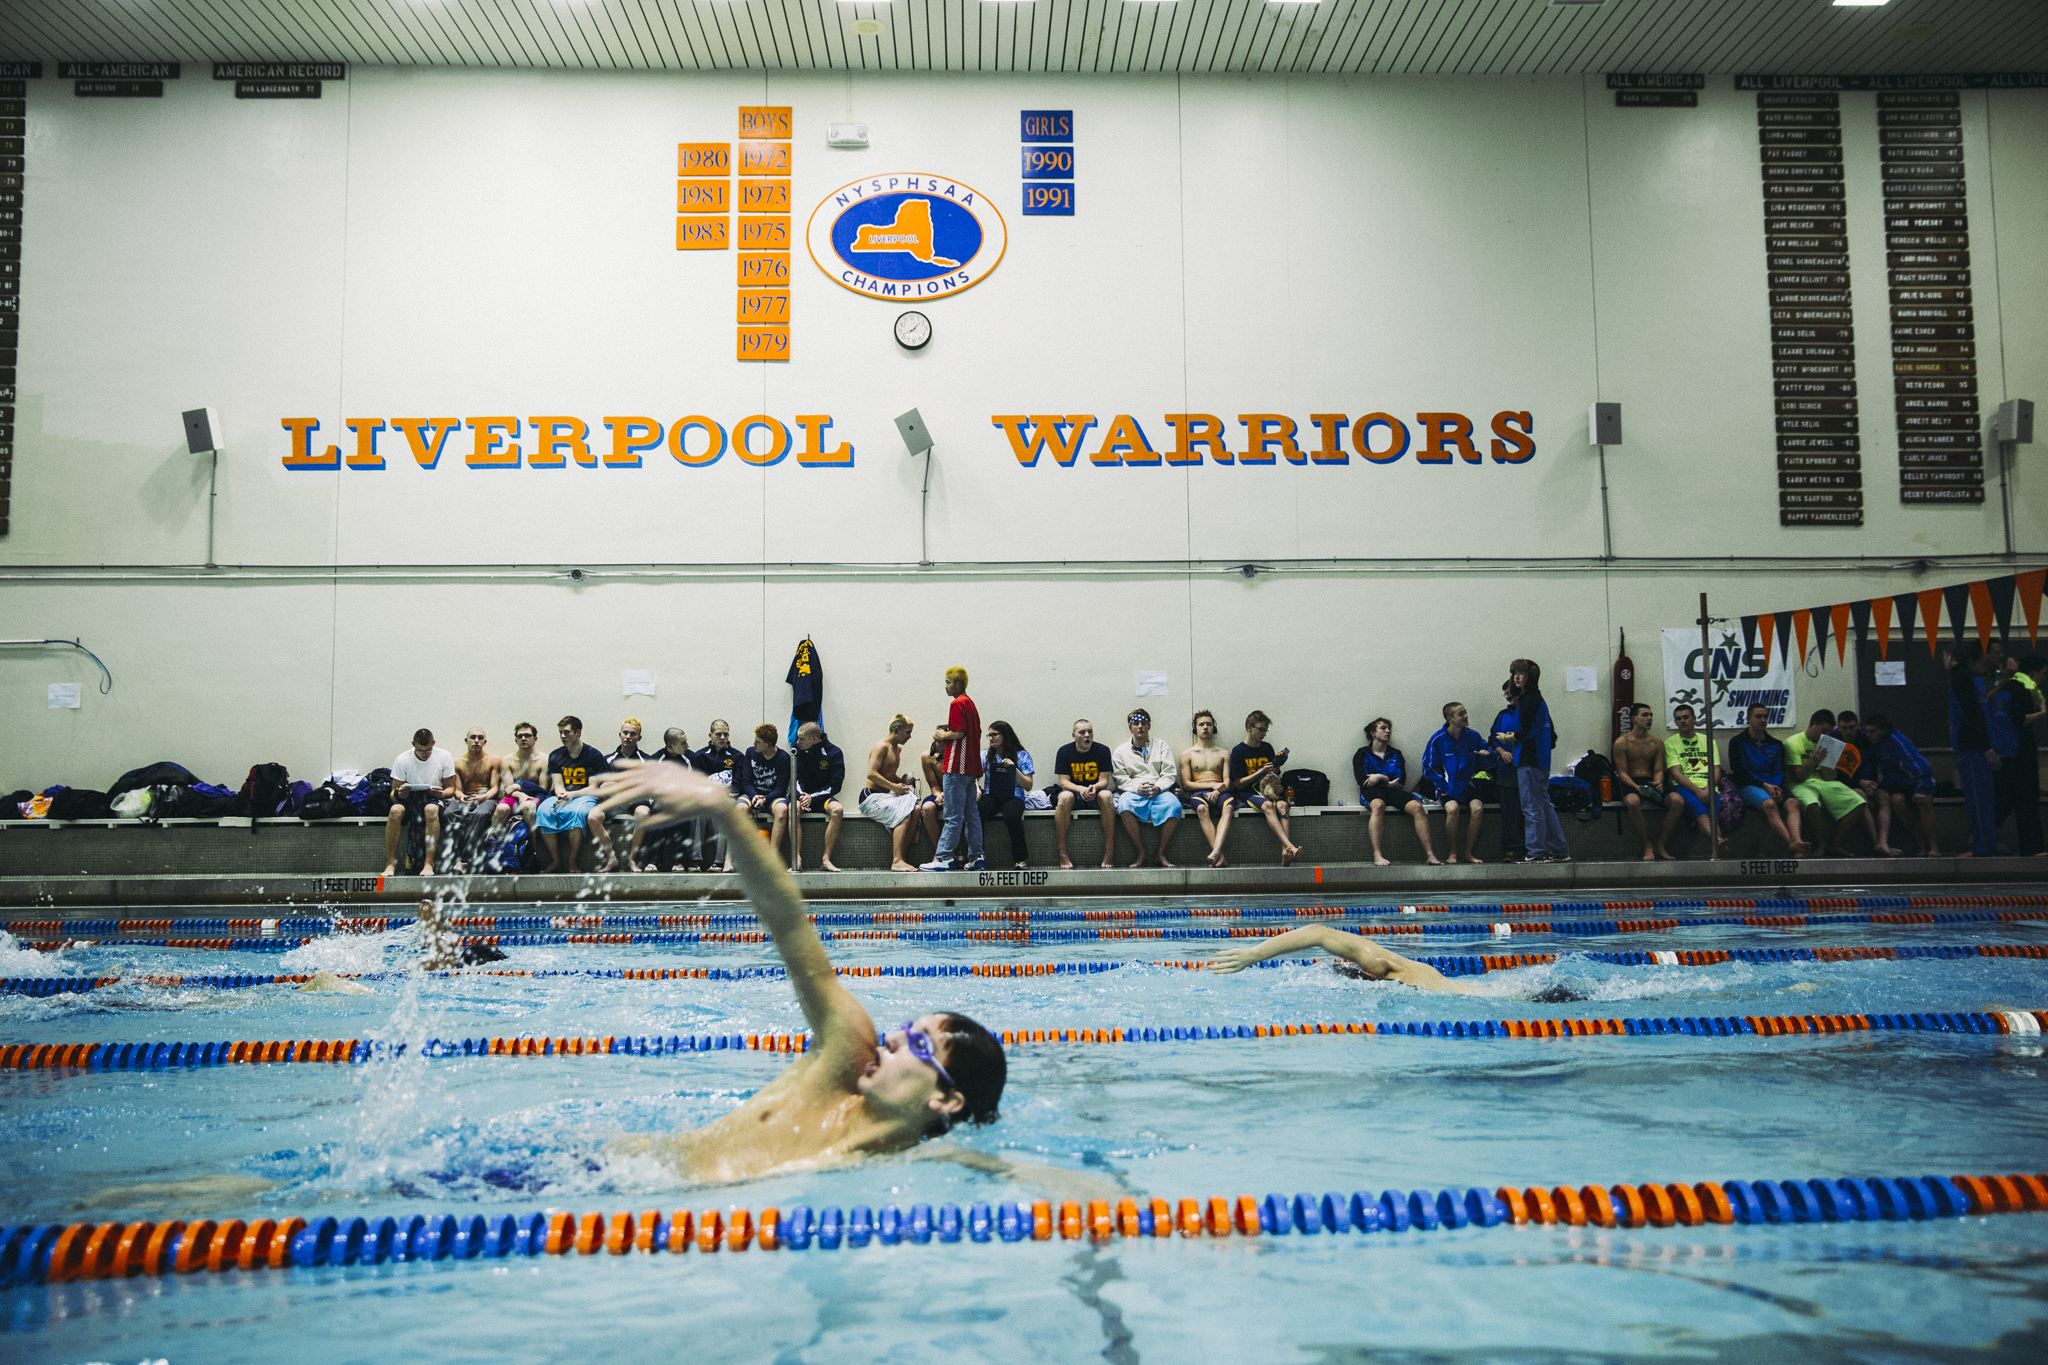 Jacob Fauret, a senior from Watertown swims warmup laps during a break at the Section 3 Boys A Championship Meet at Liverpool High School. Watertown dominated the first half of the meet, and placed second on the evening.